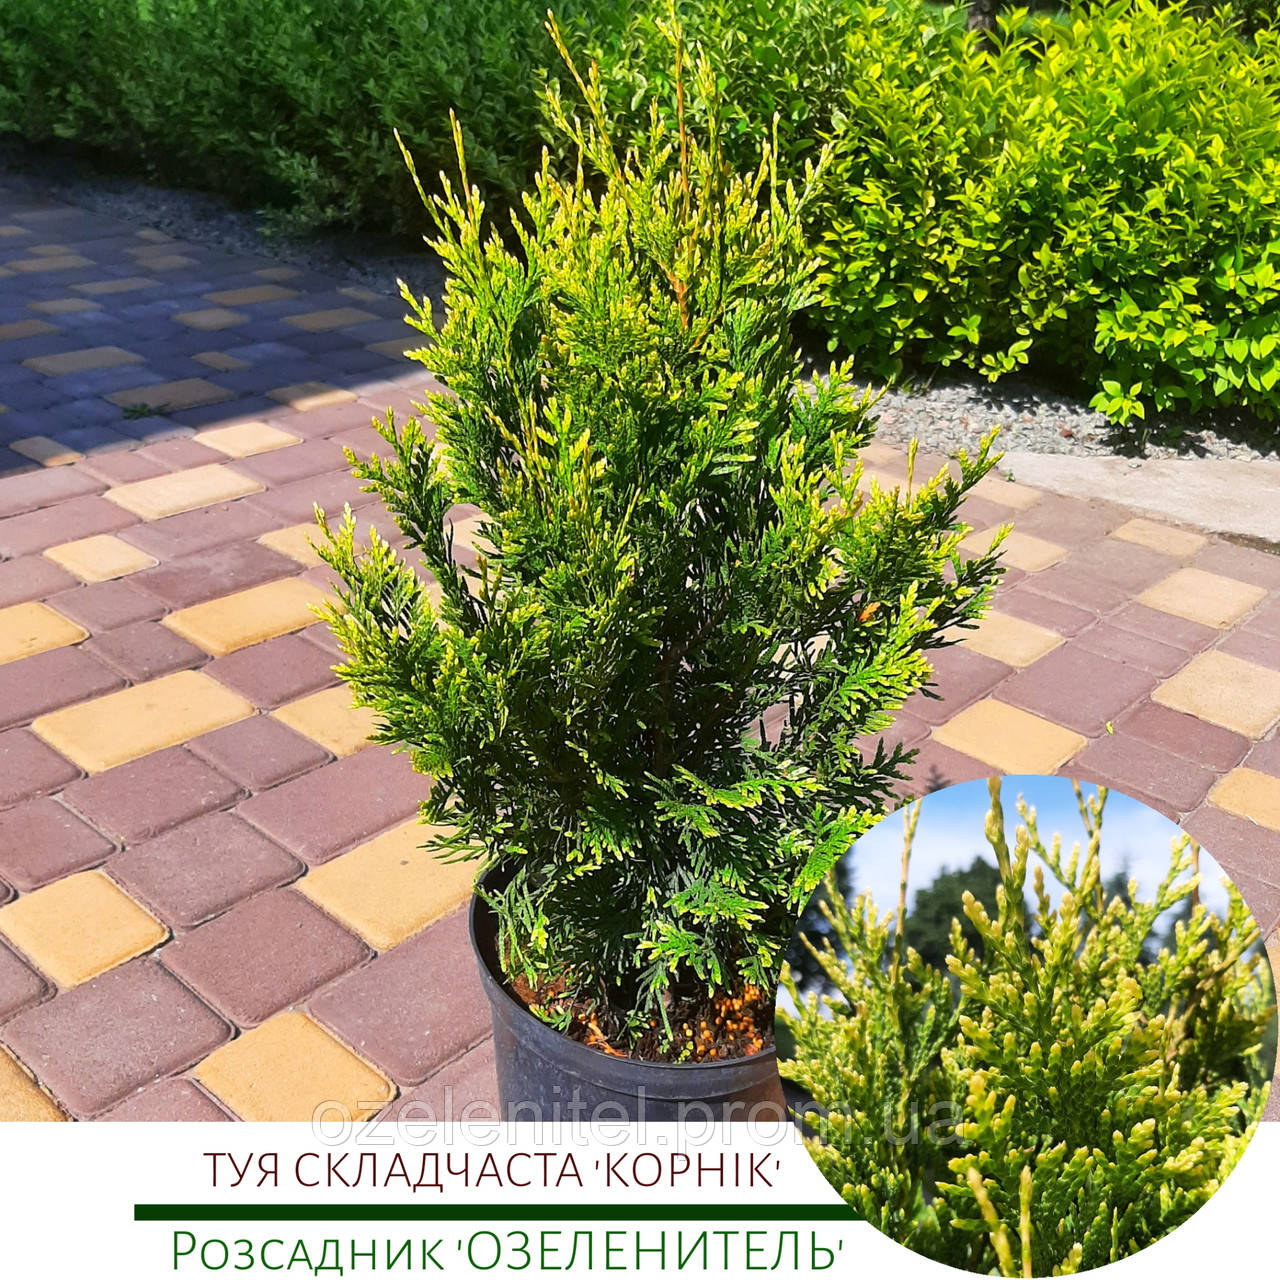 Туя складчатая 'Корник' / Thuja occidentalis 'Kornik' / Туя складчата 'Корнік'